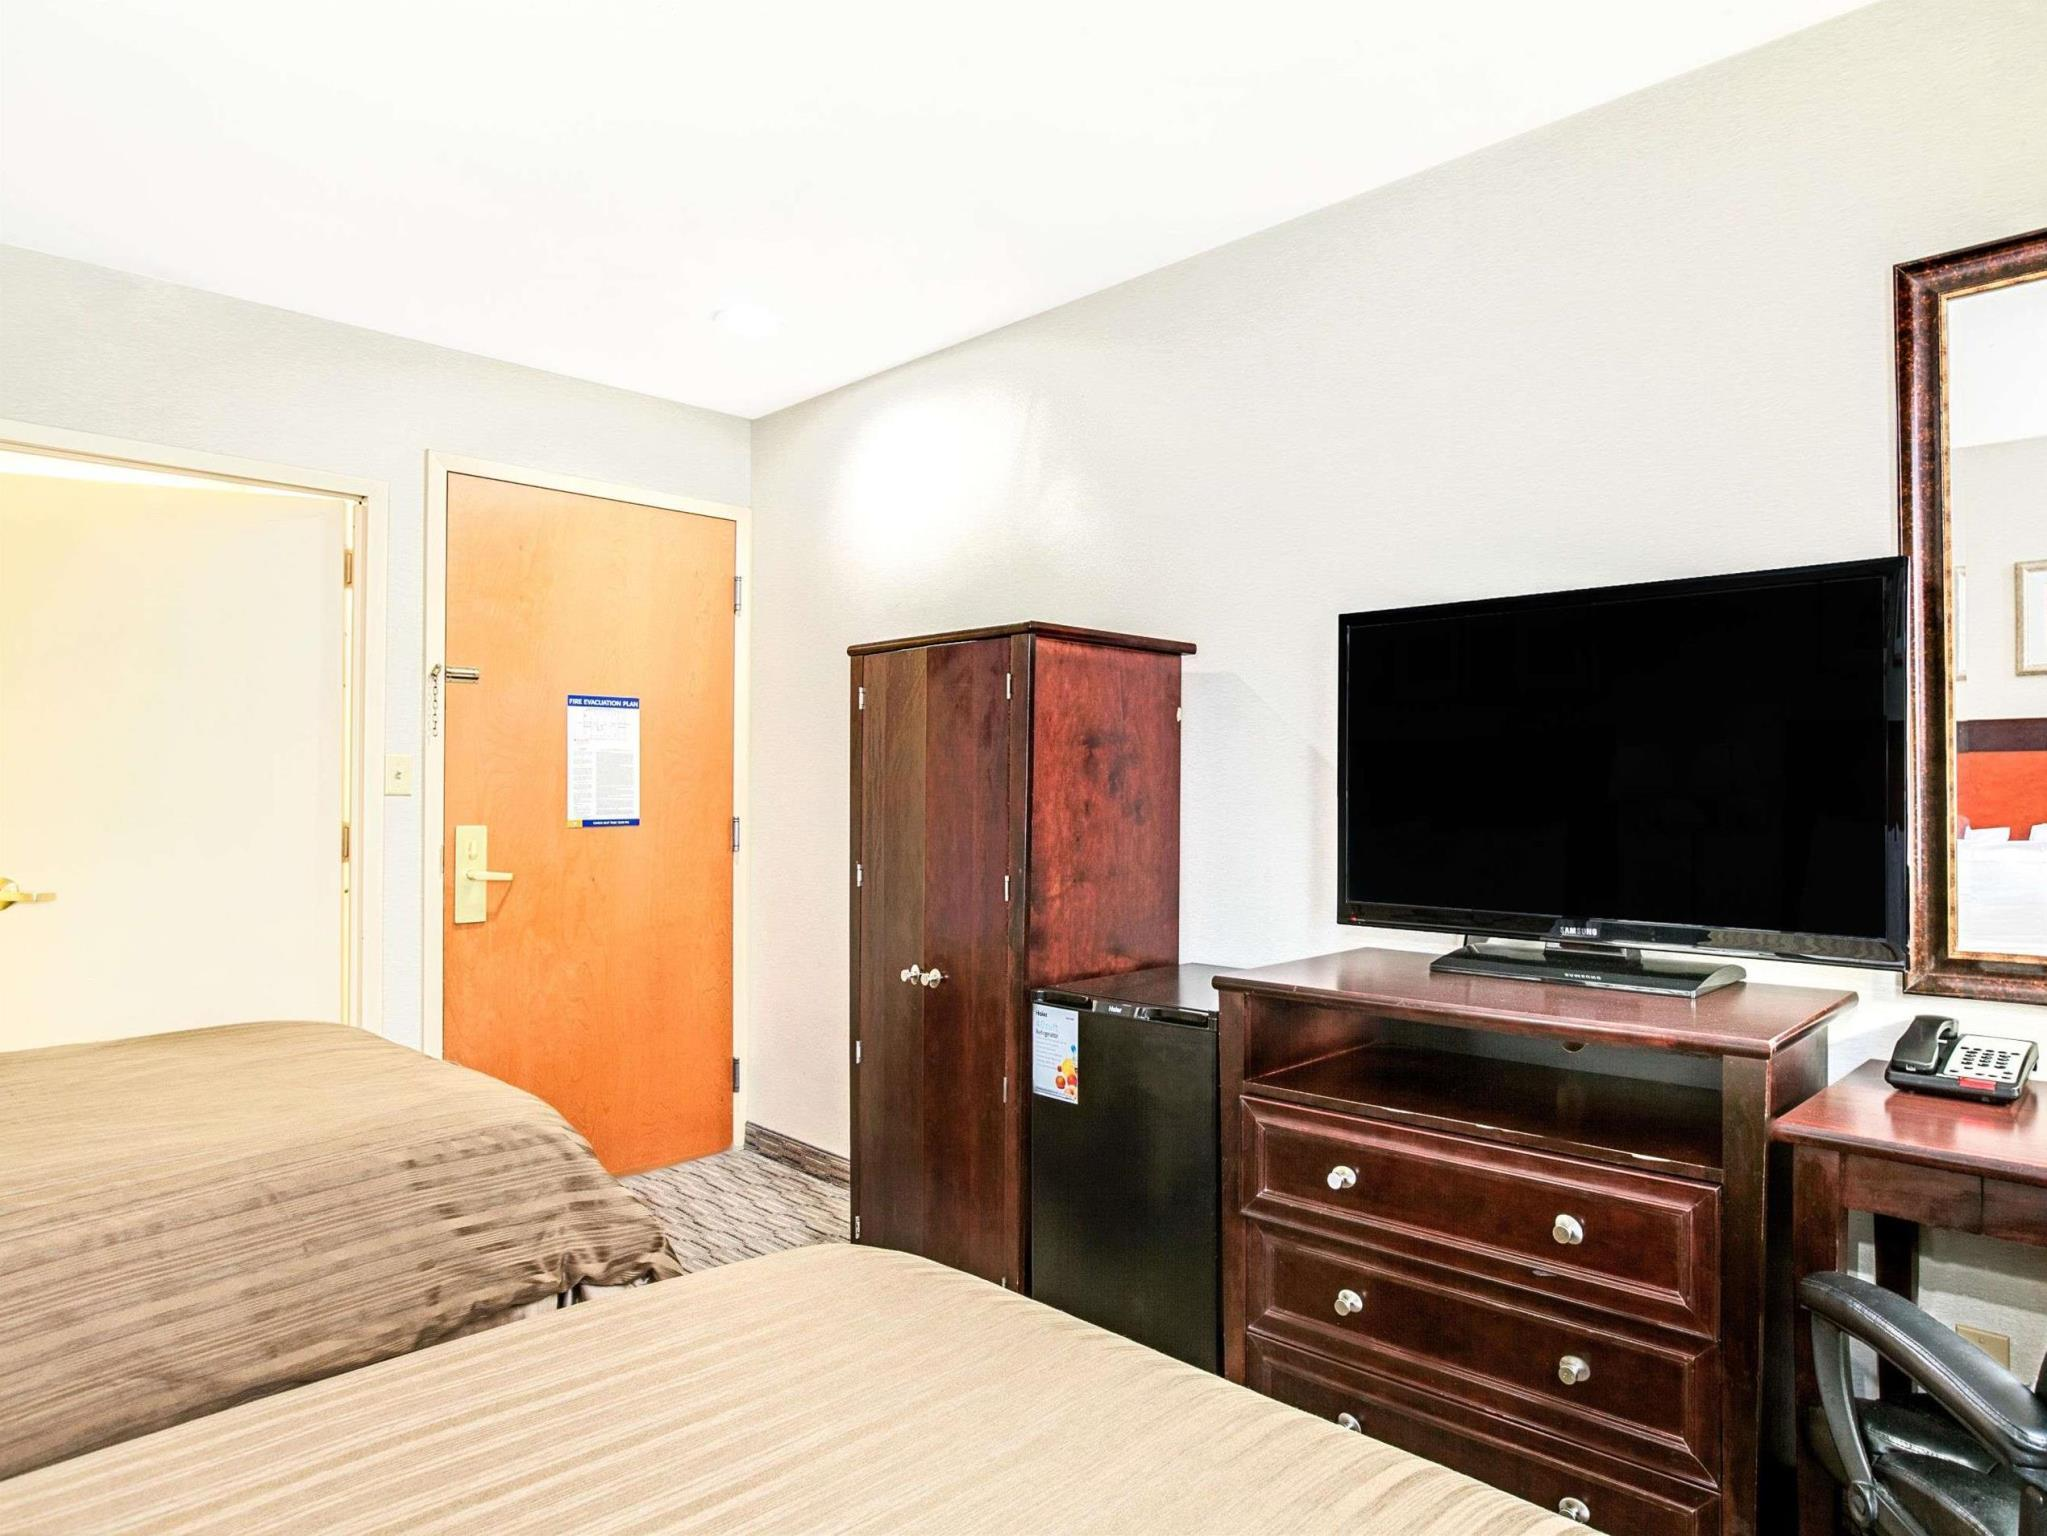 More About Days Inn By Wyndham Long Island City